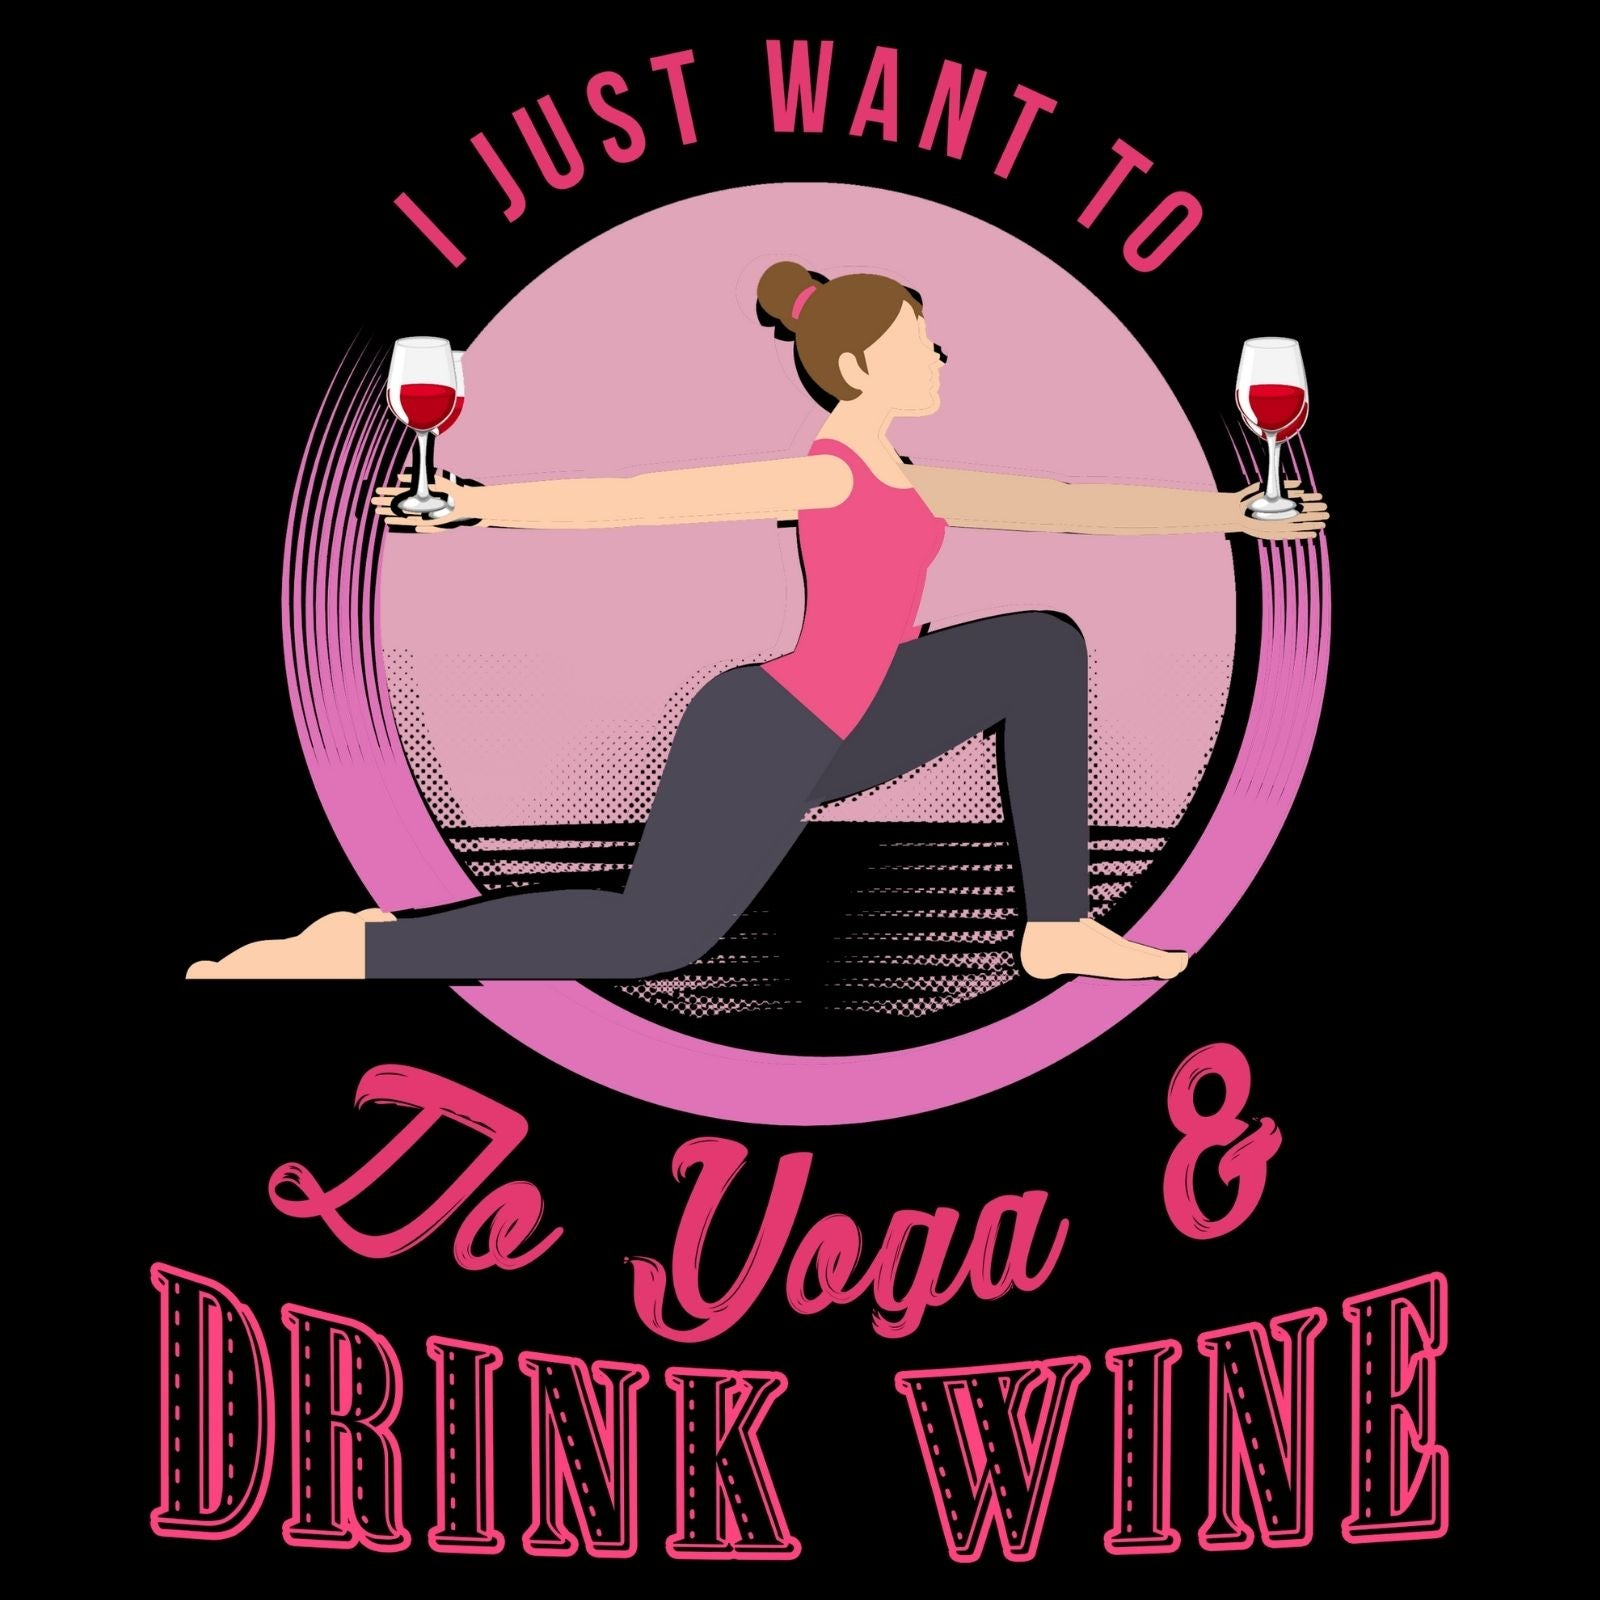 I Just Want To Do Yoga & Drink Wine - Bastard Graphics